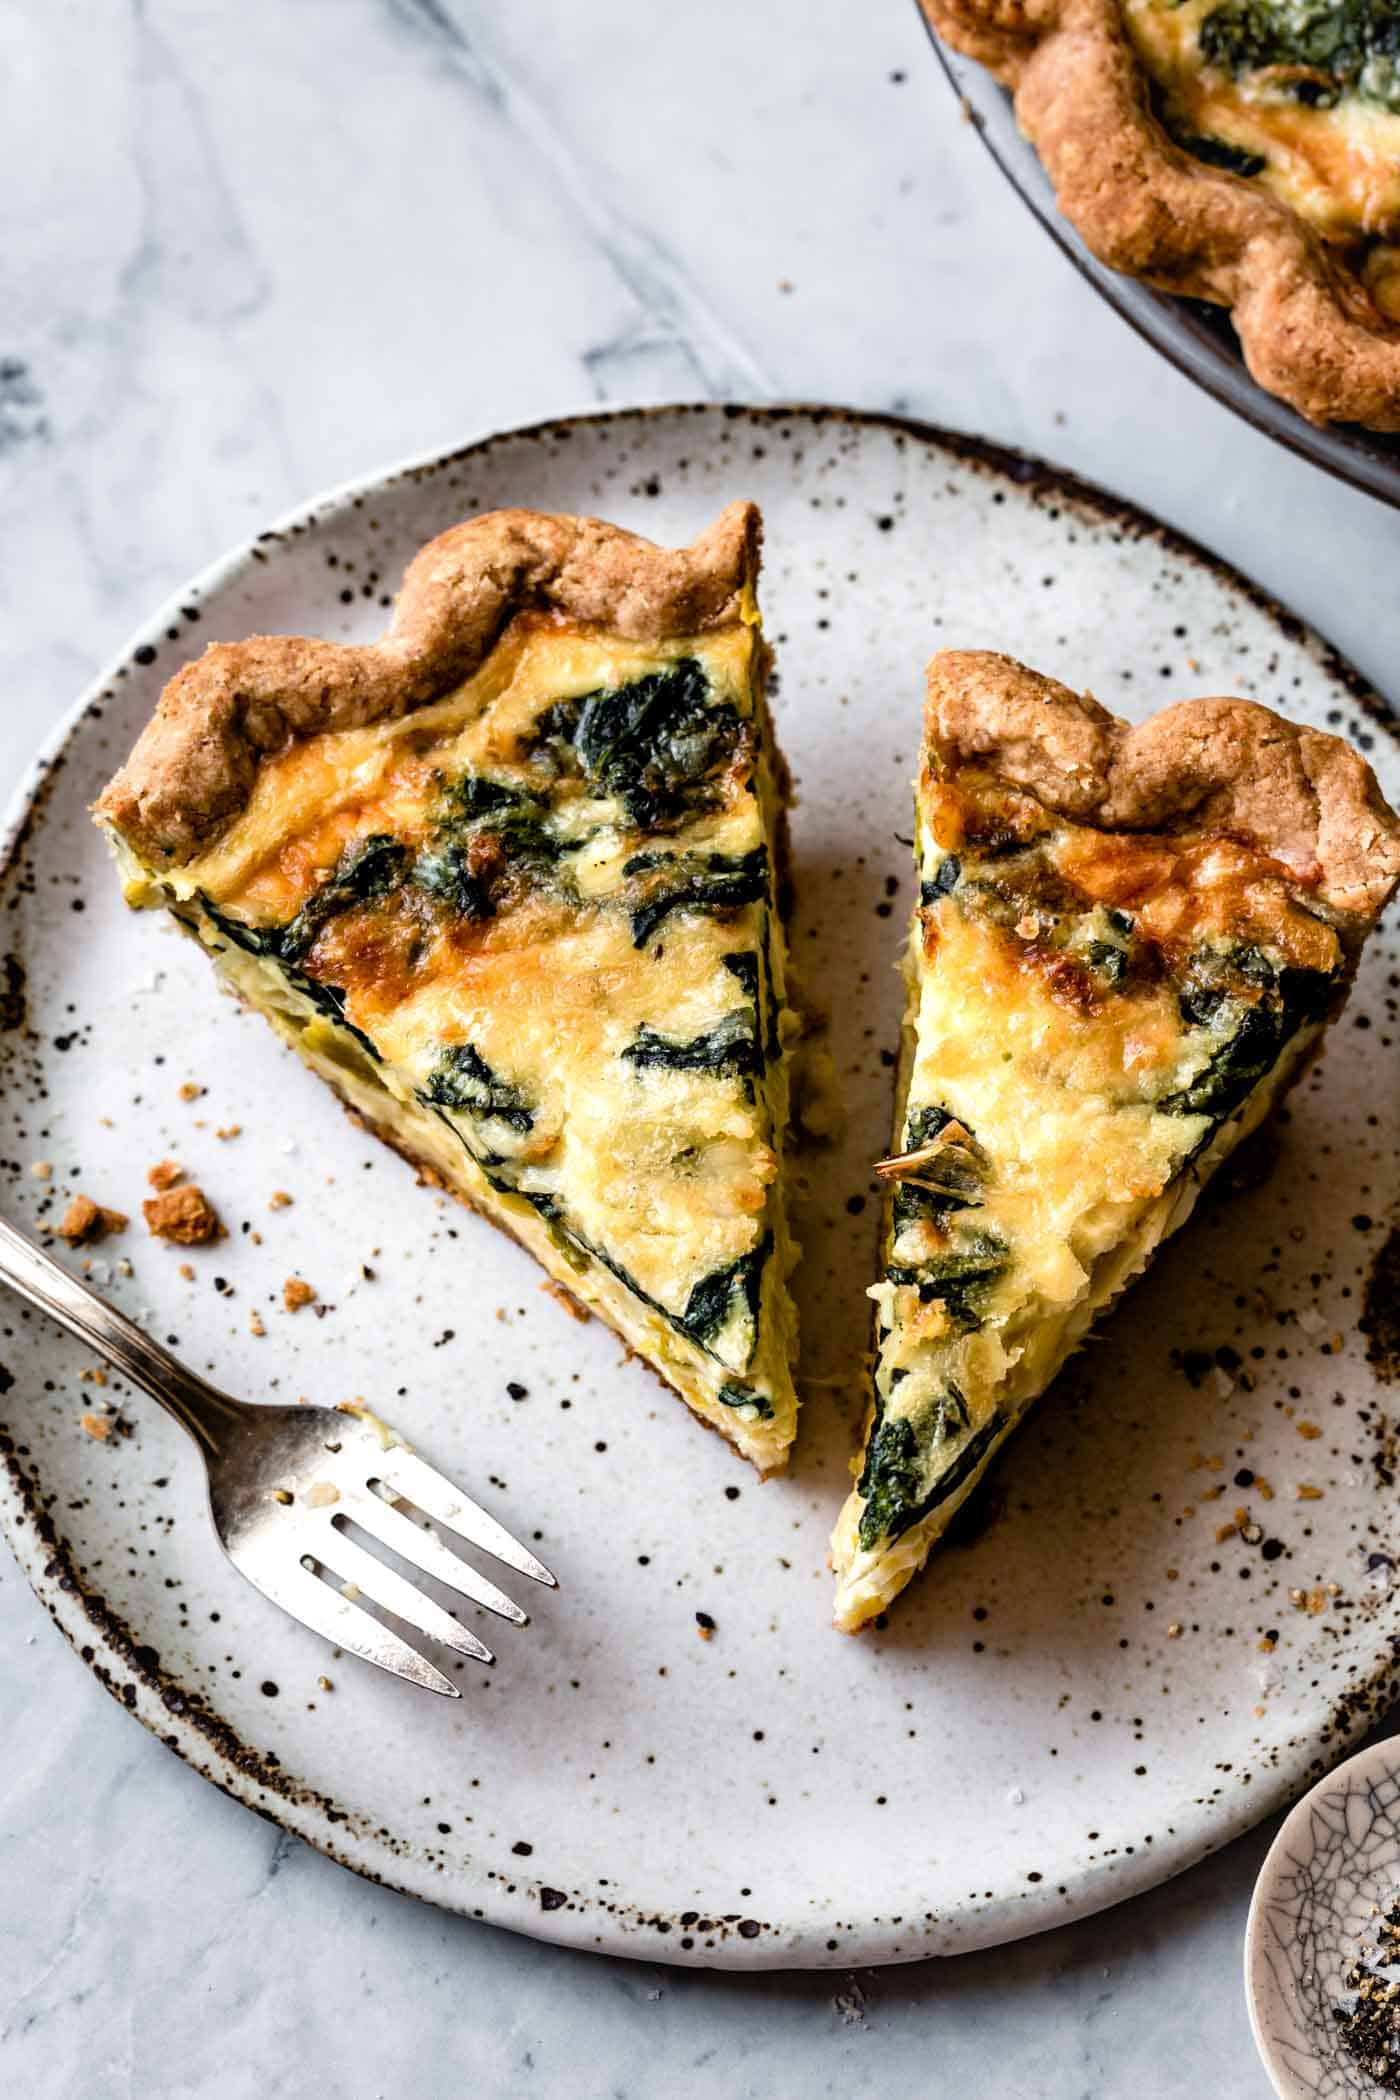 slices of gluten-free dairy-free quiche on a speckled plate